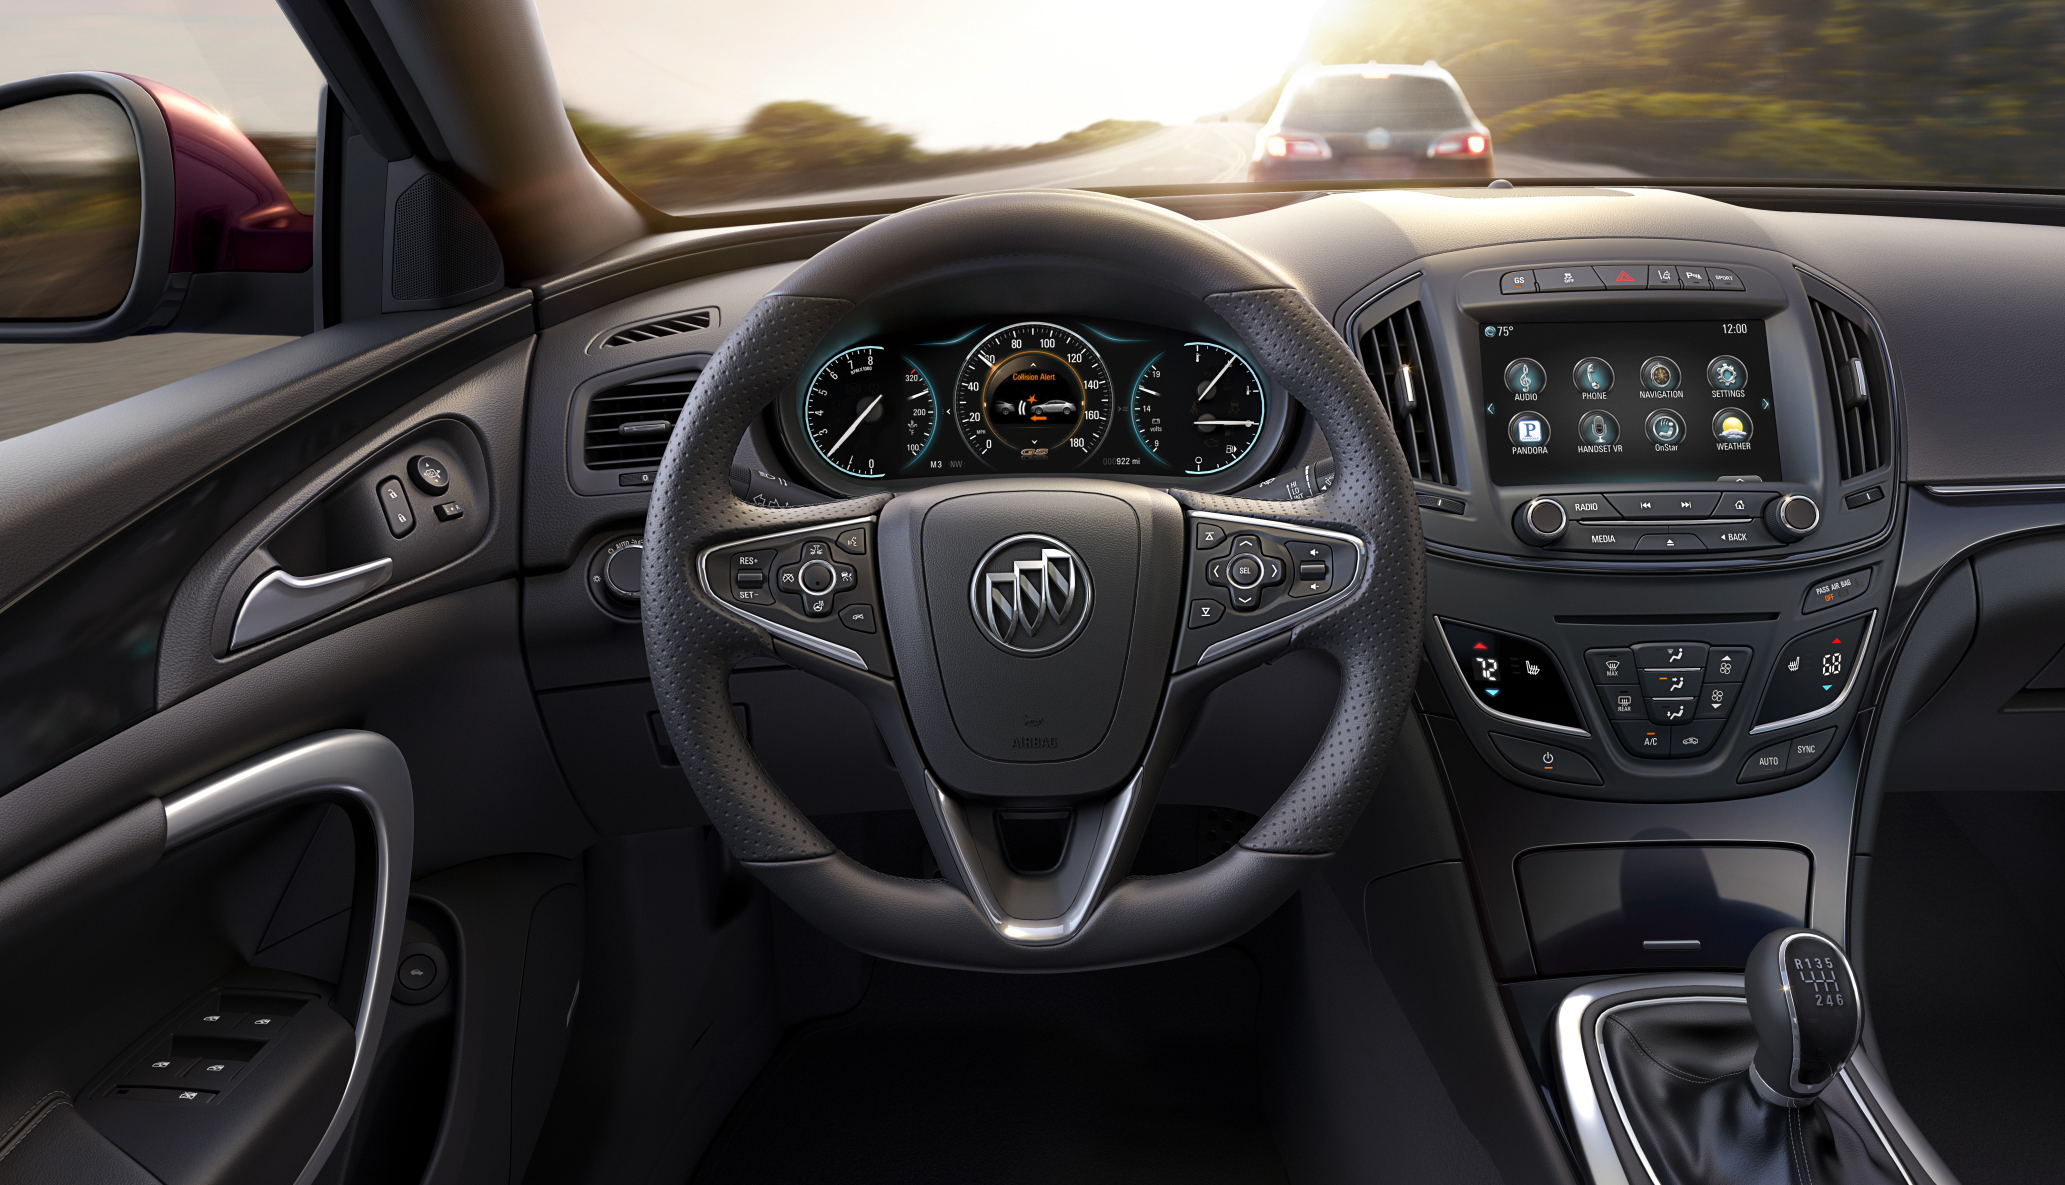 2017 buick regal overview the news wheel. Black Bedroom Furniture Sets. Home Design Ideas